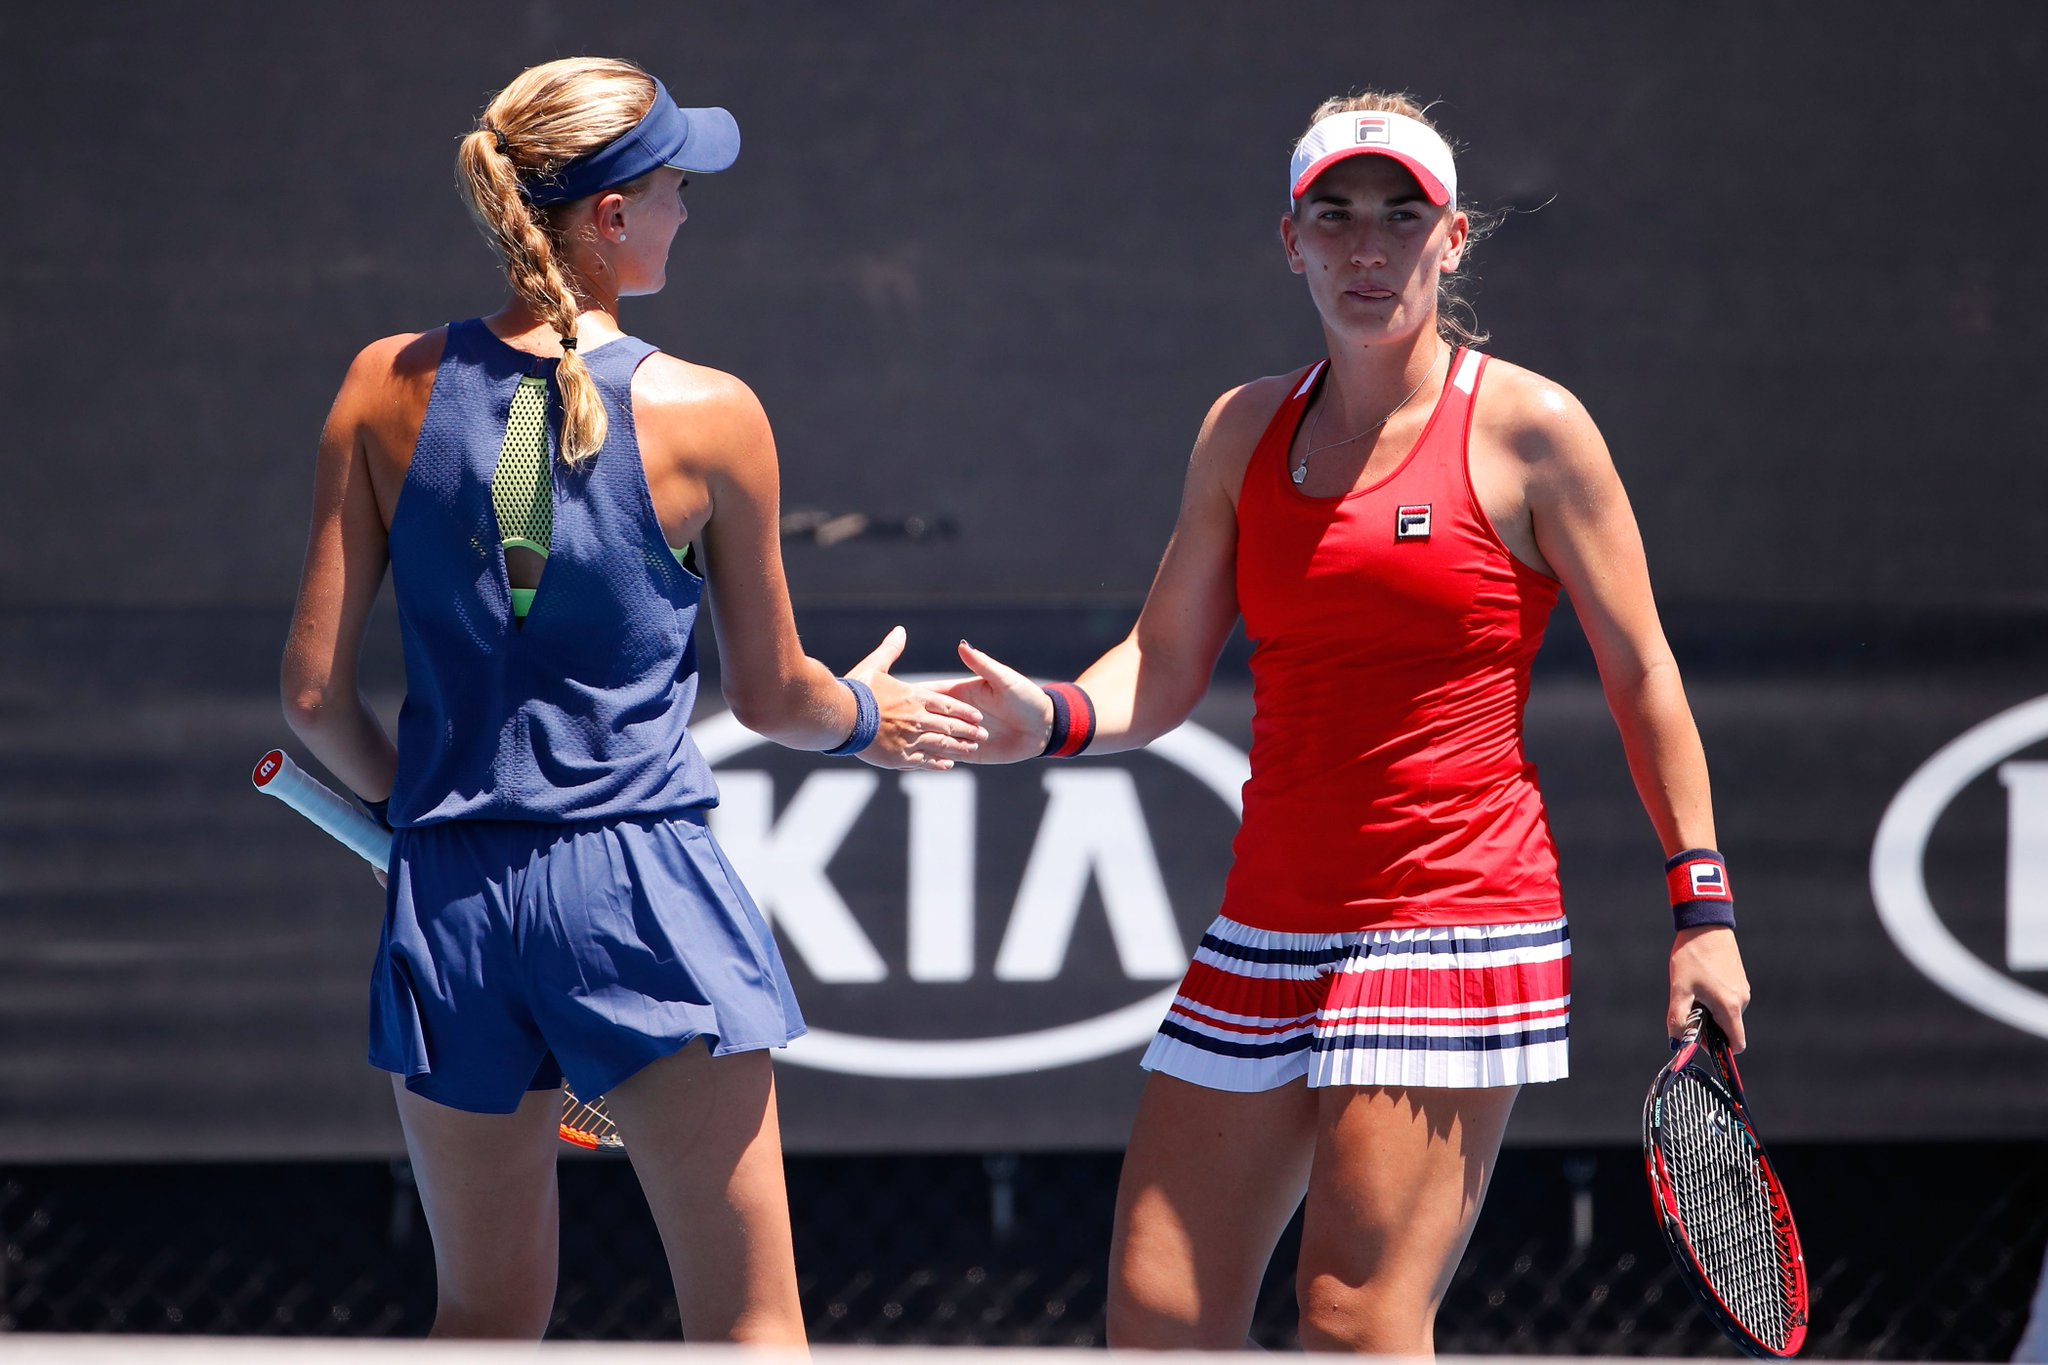 .@KikiMladenovic and @TimeaBabos kick off #AusOpen doubles campaign with a win!  Round-up--> https://t.co/UMuMB9fhsn https://t.co/5GI2vmyHyQ